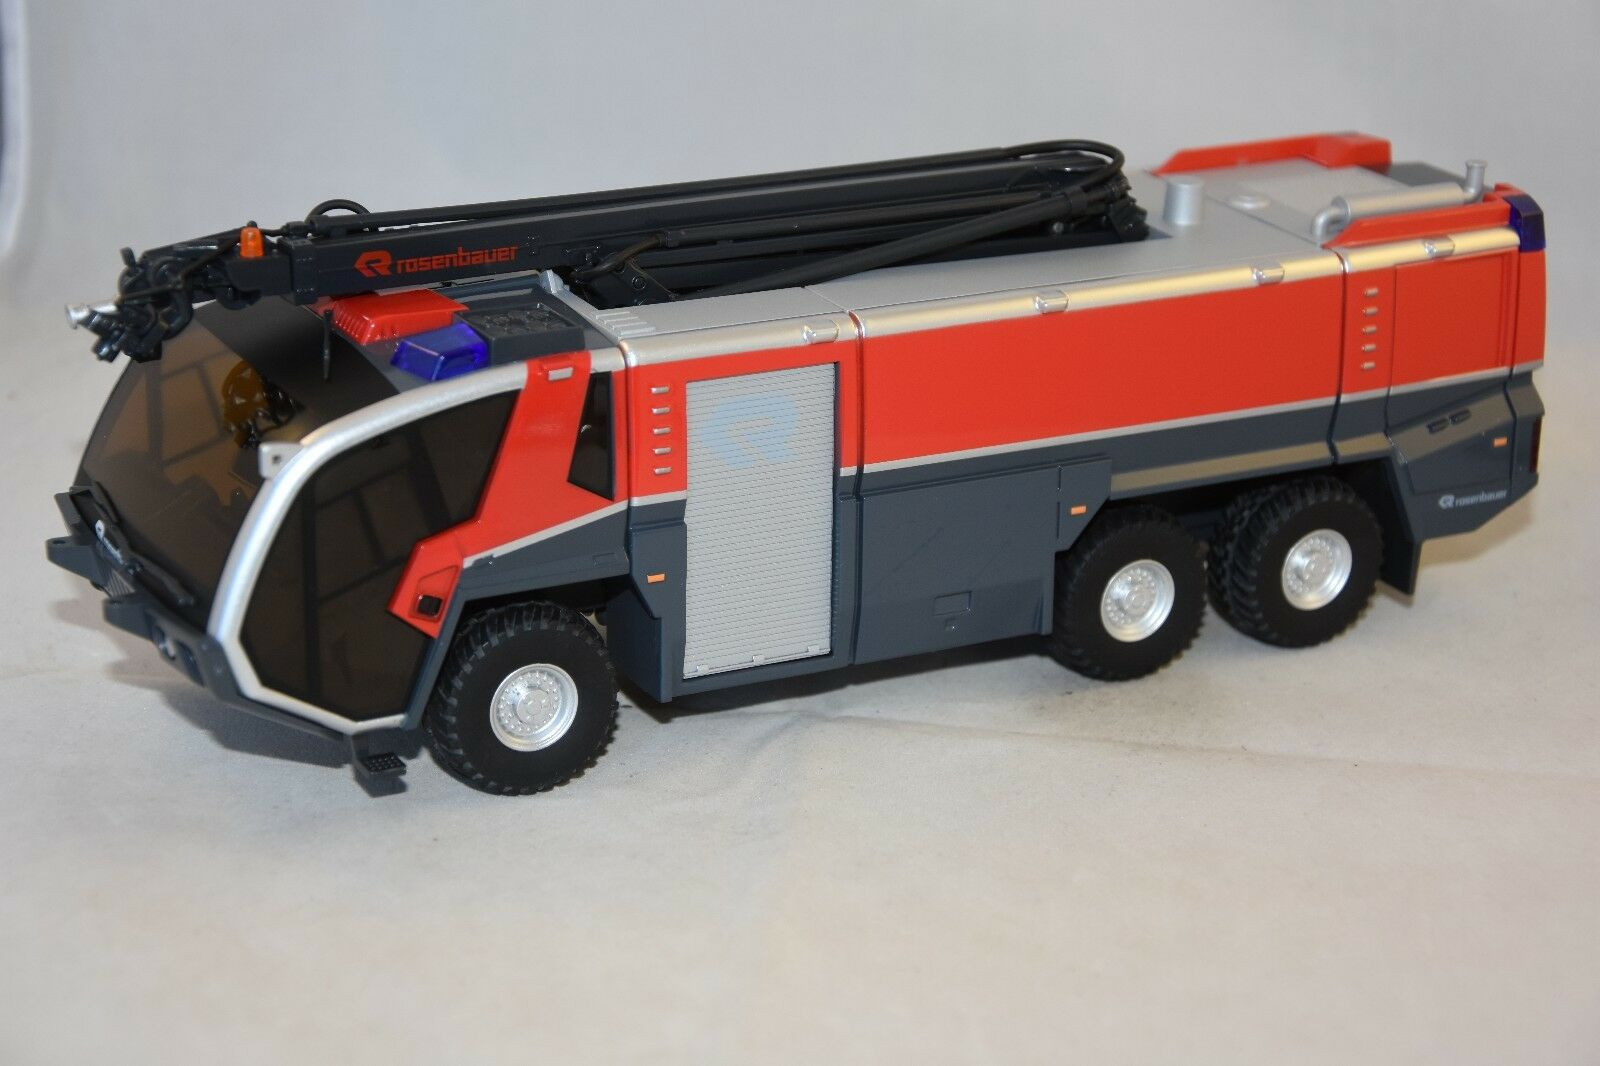 Wiking wiking 7610-panther pinknbaueur flf 6x6 with lanche incend firemen 1 43